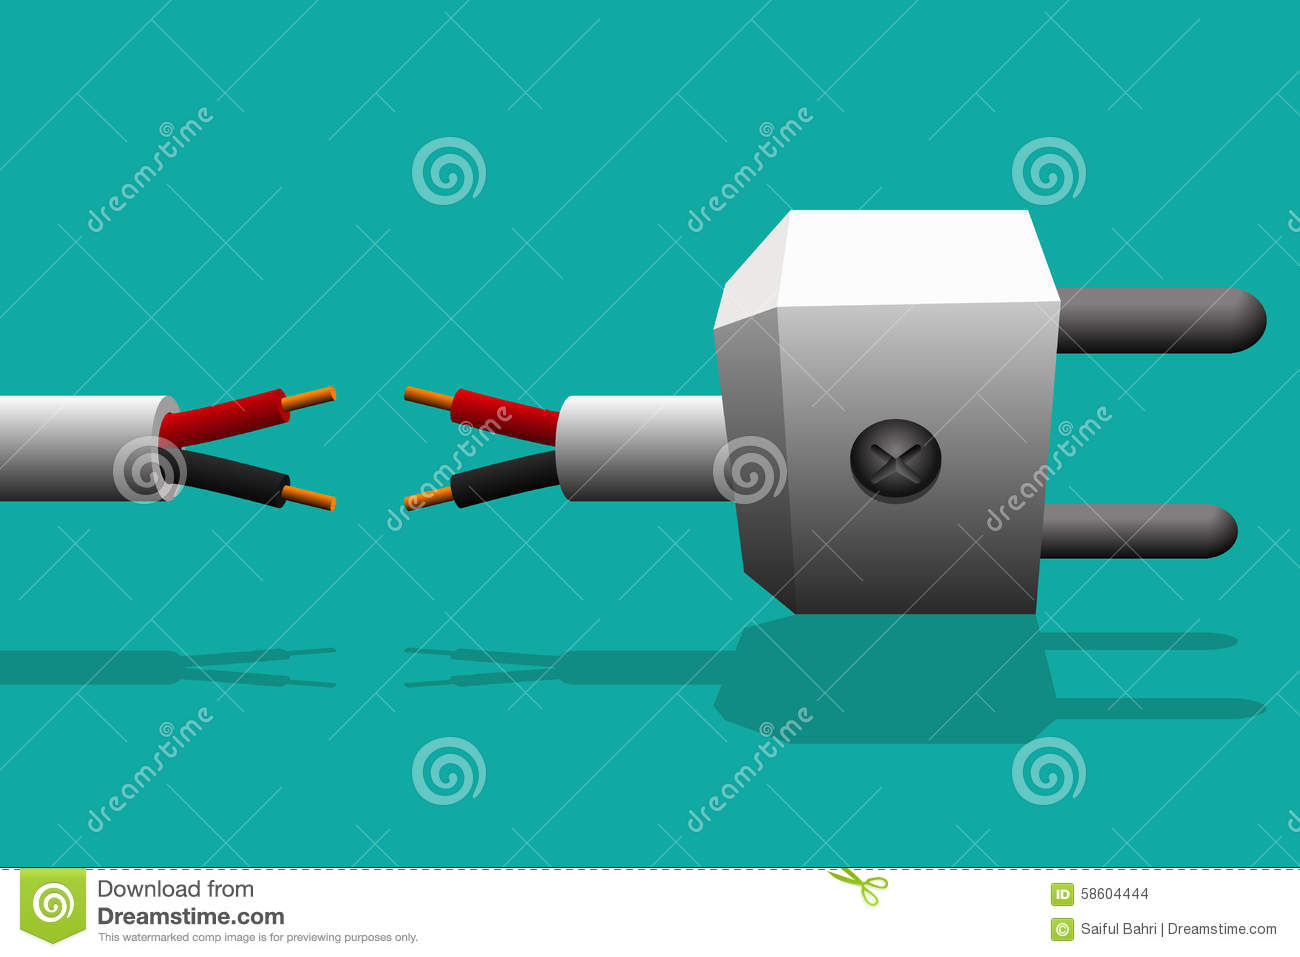 Electrical Connector With The Electrical Wiring Is Not Connected Or ...